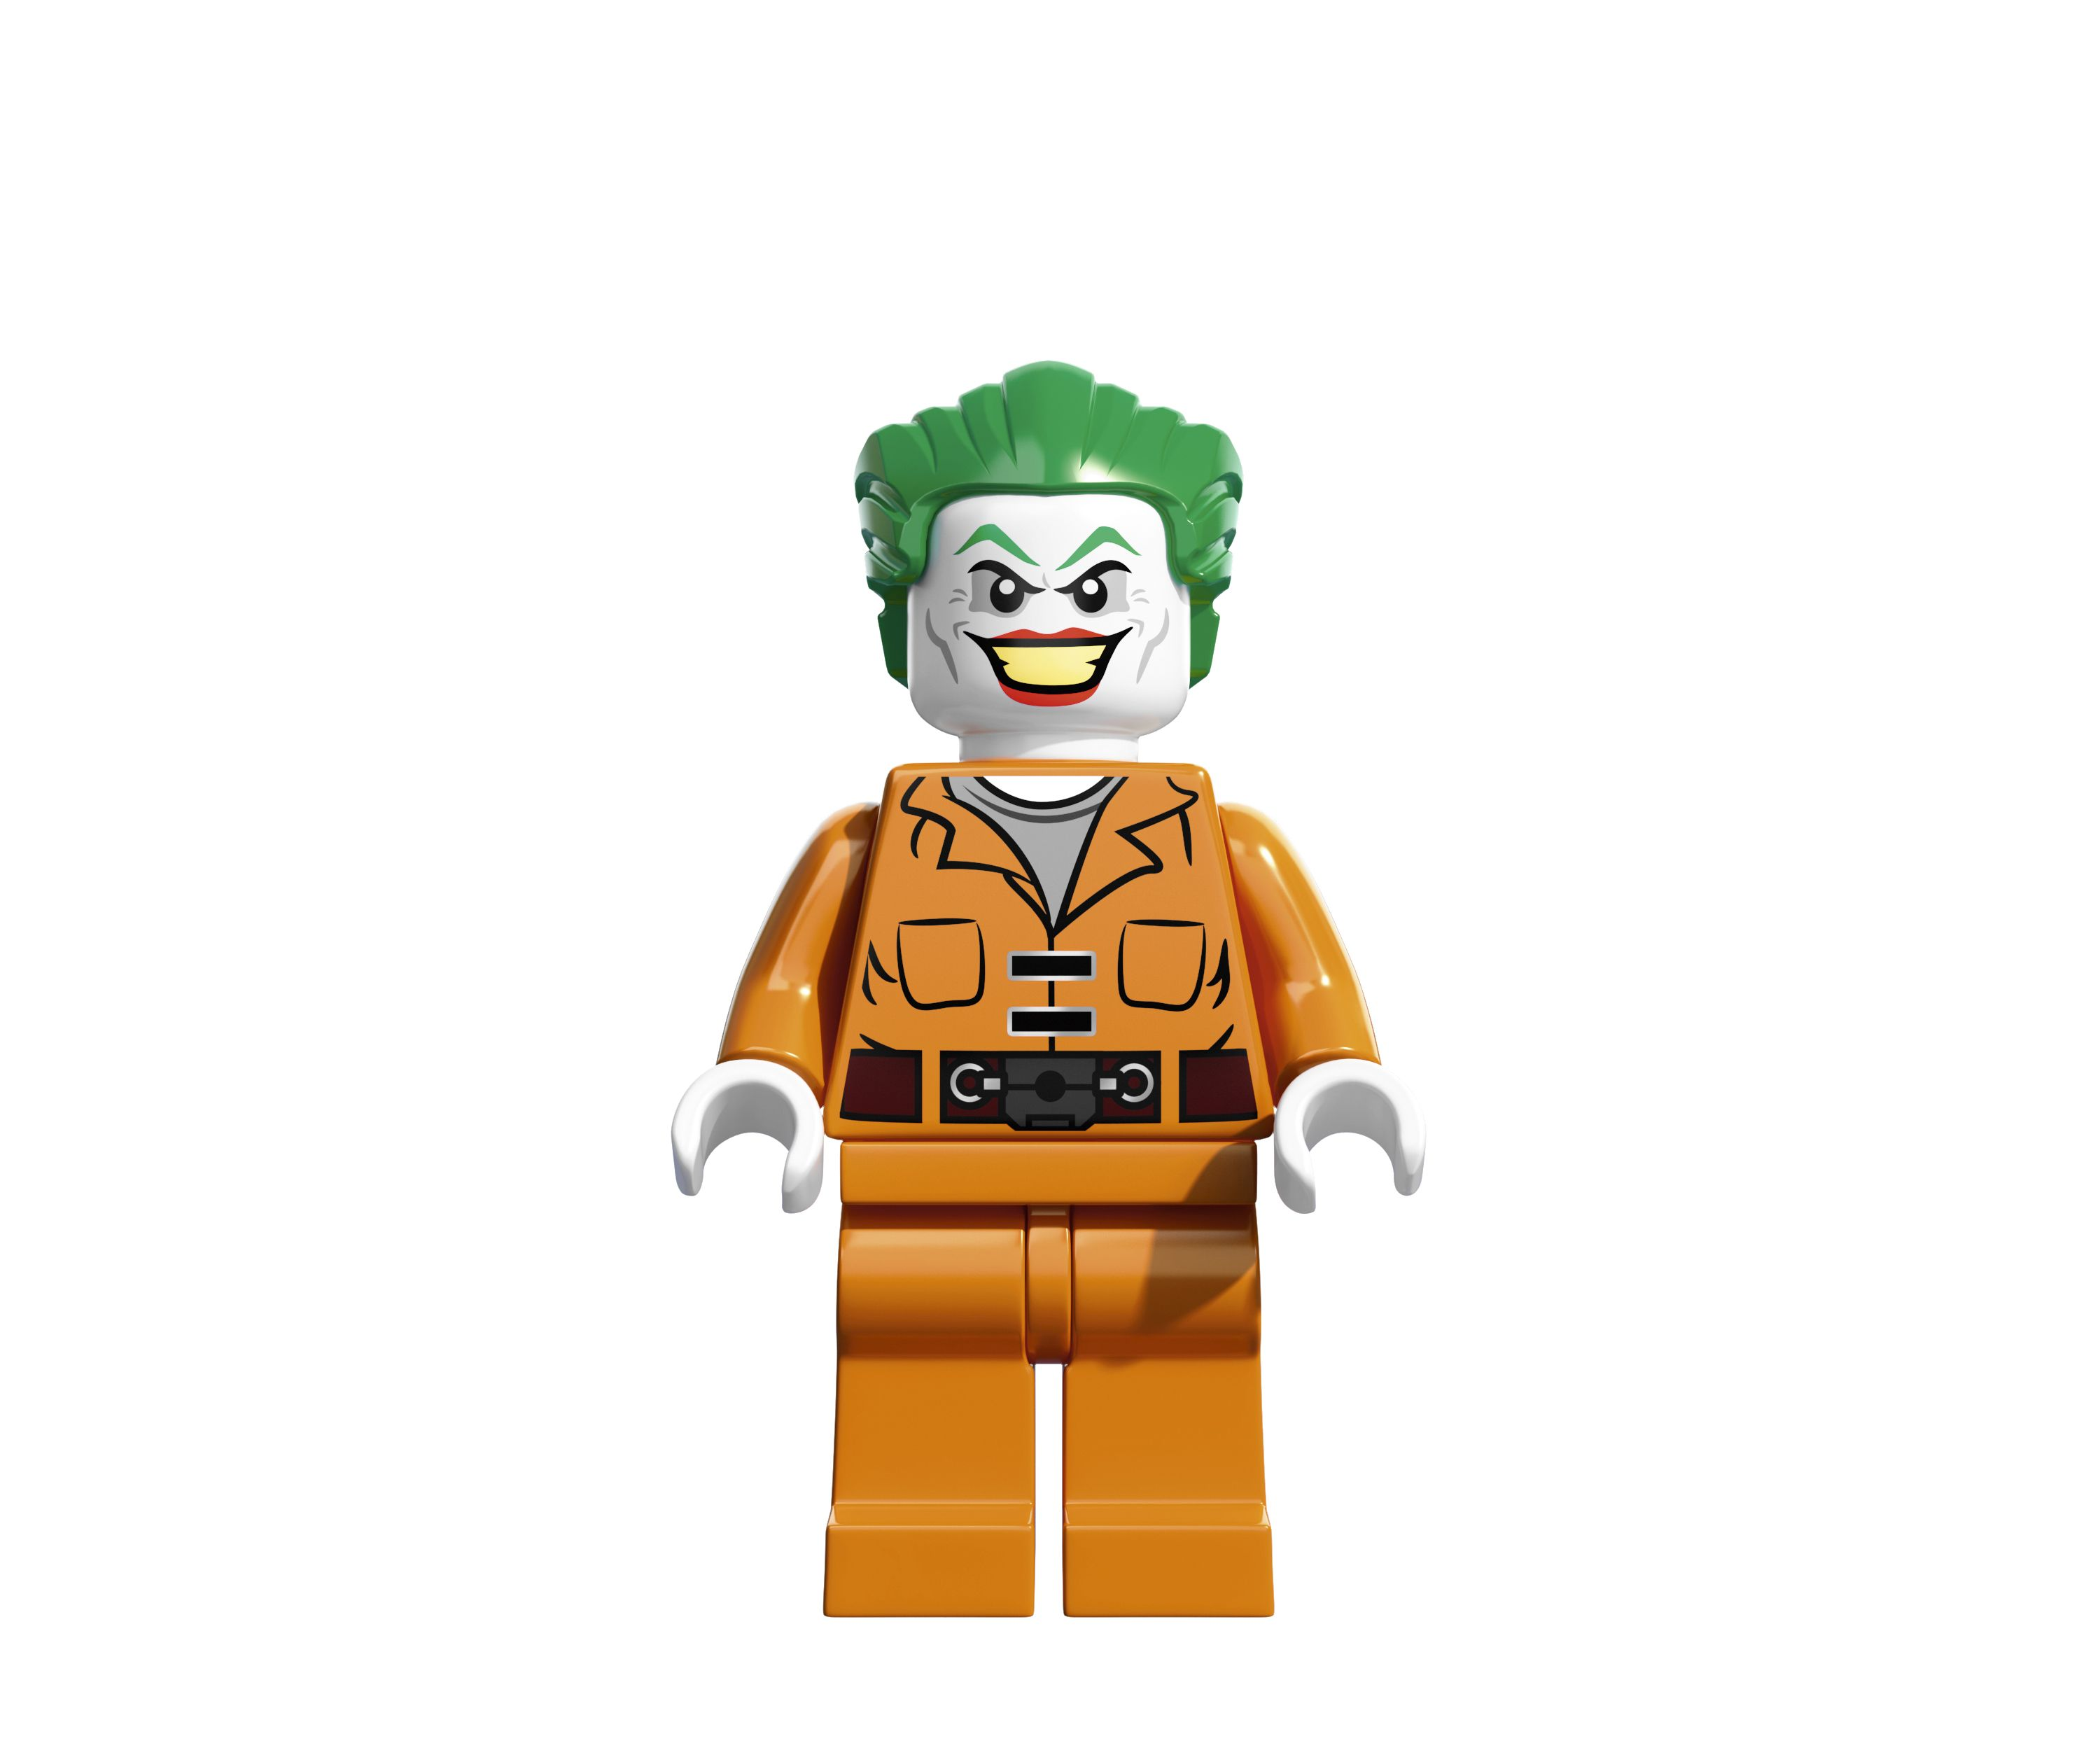 lego joker face coloring pages - Google Search | Tia\'s Cupcakes ...